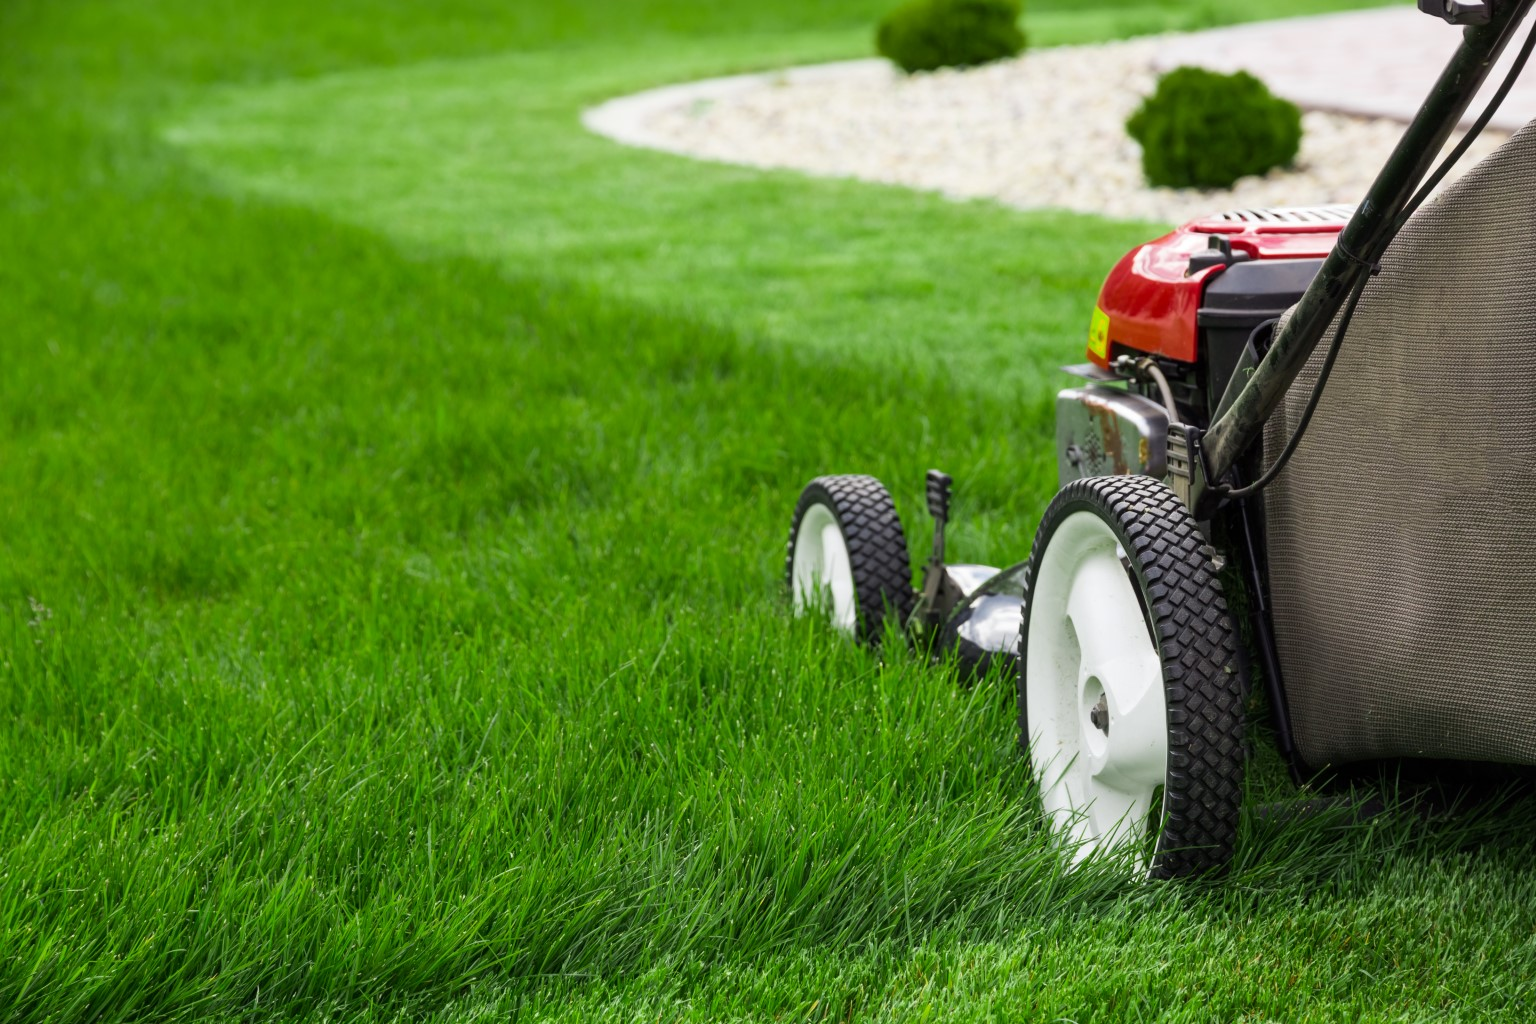 Lawn Care Service In Yourcity – Yourname Lawn Care